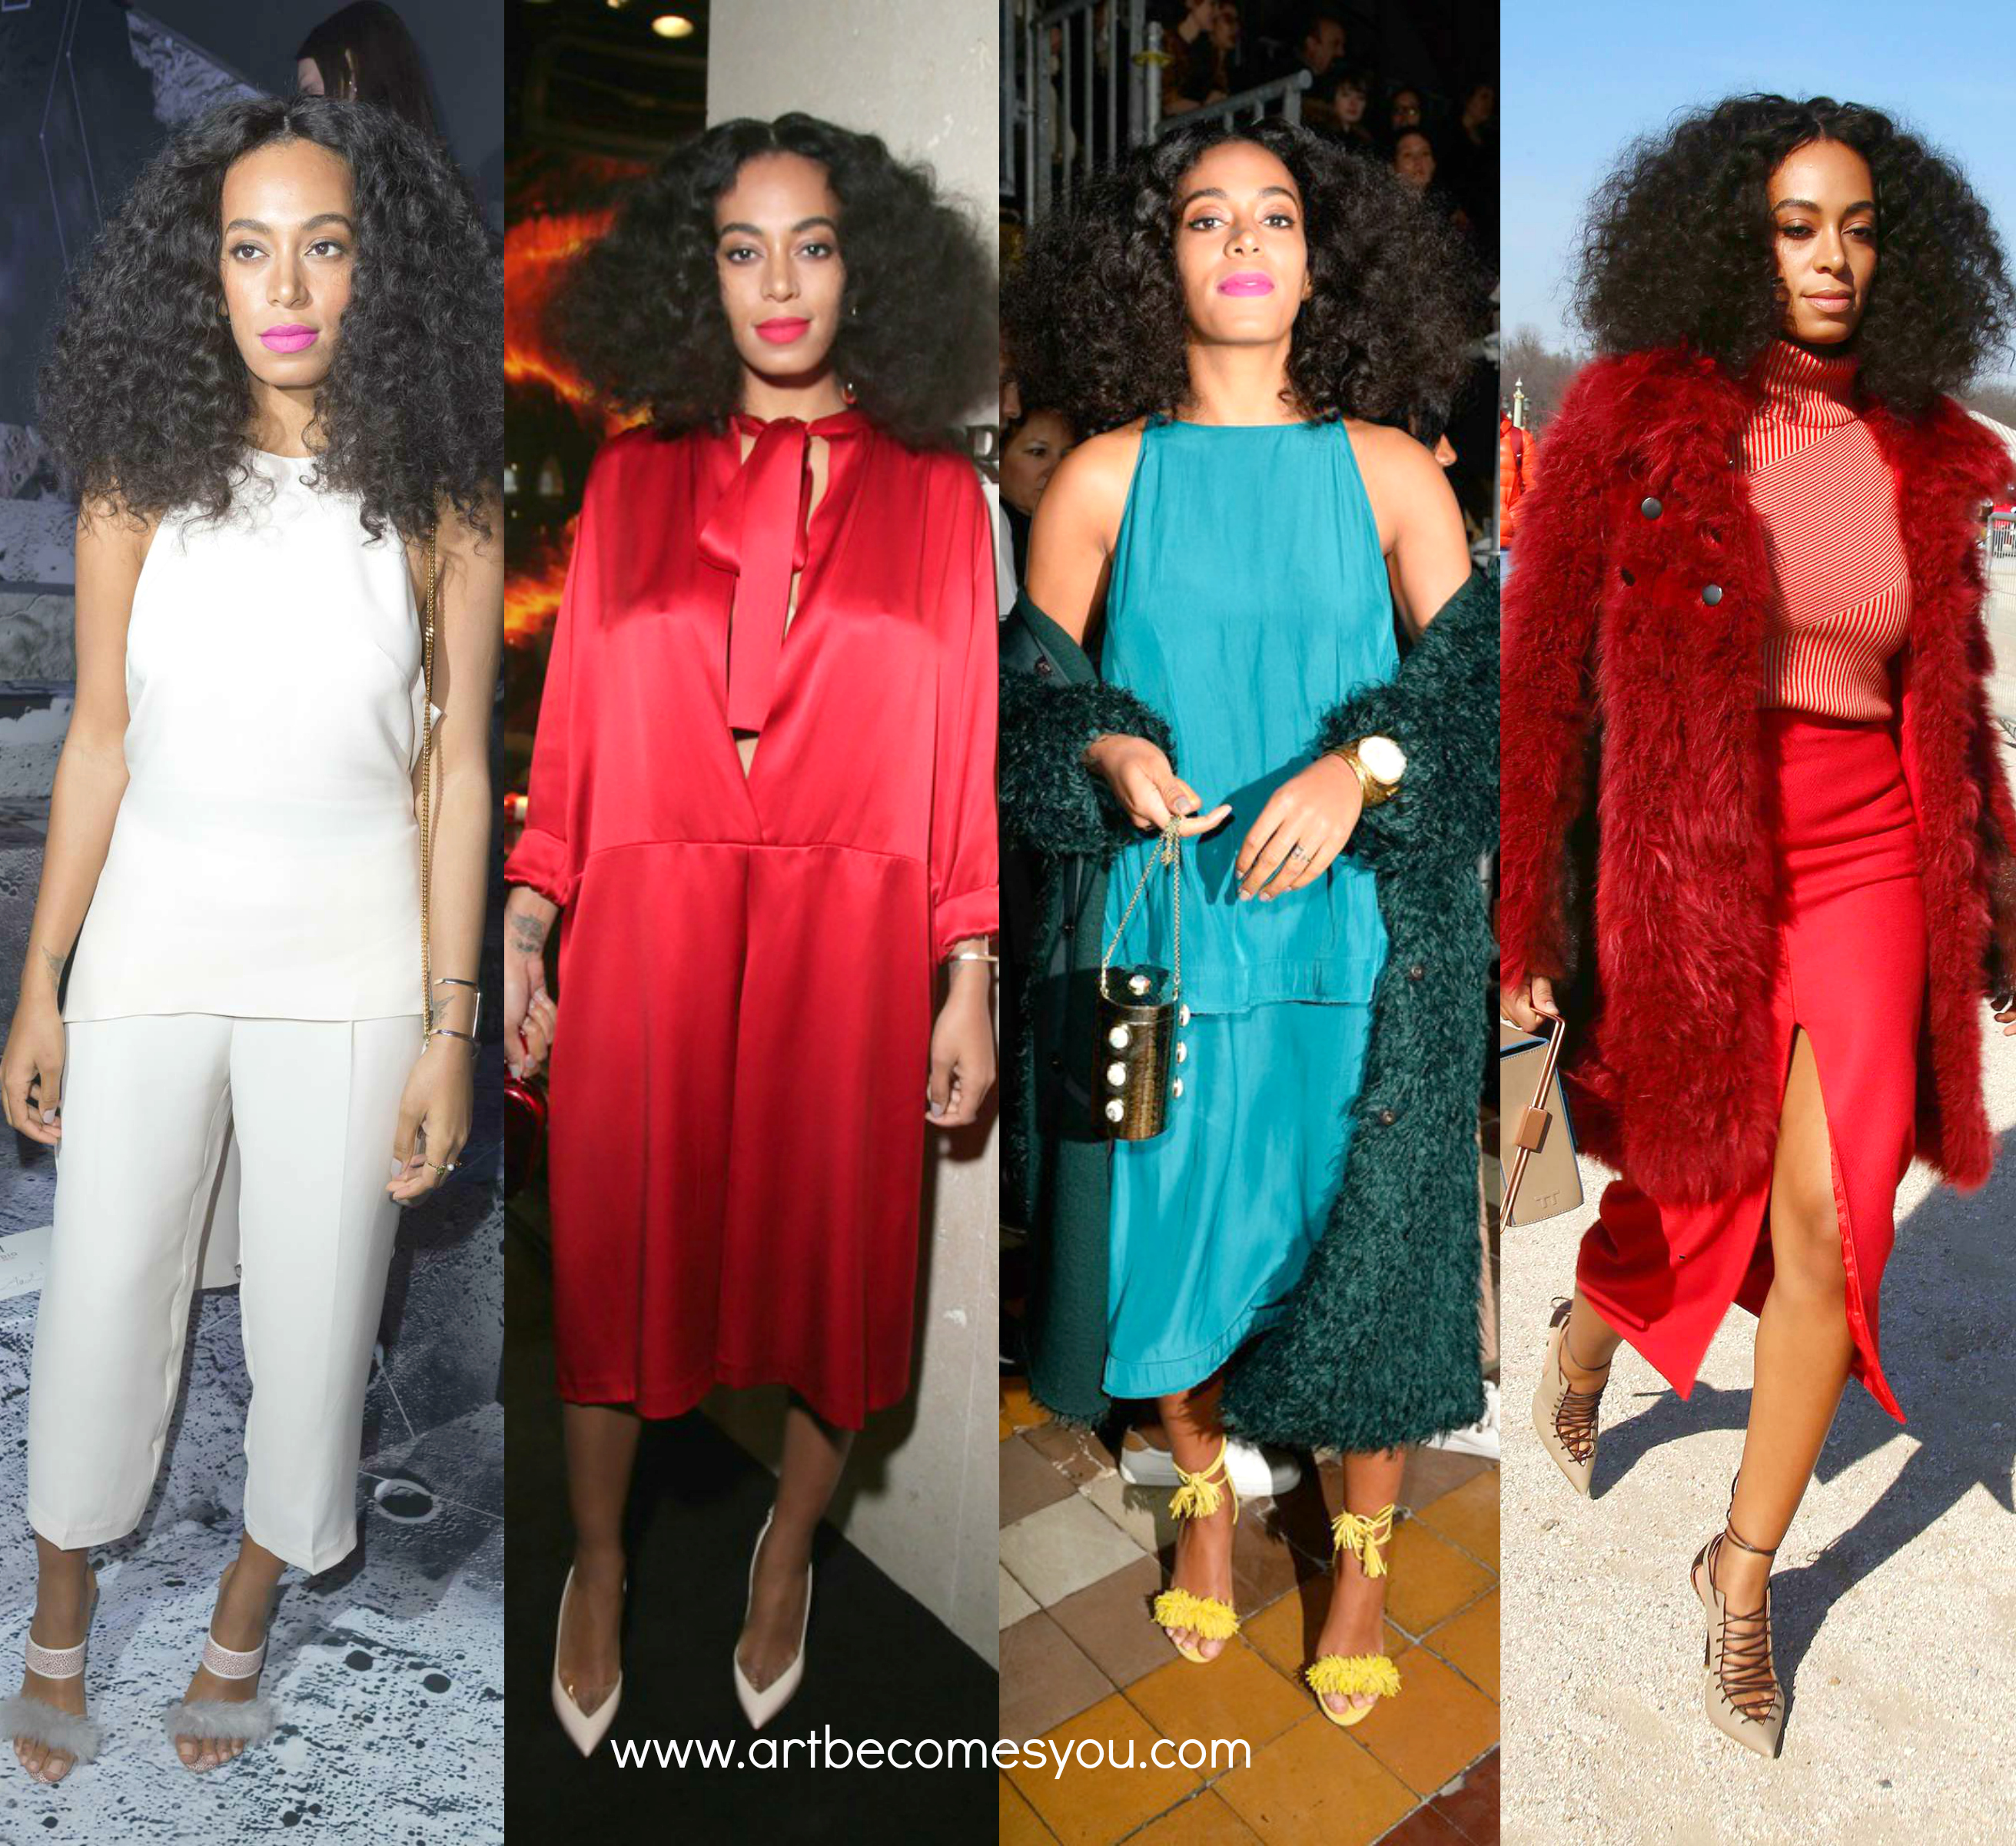 4 looks 1 girl fashion week paris solange knowles 2015